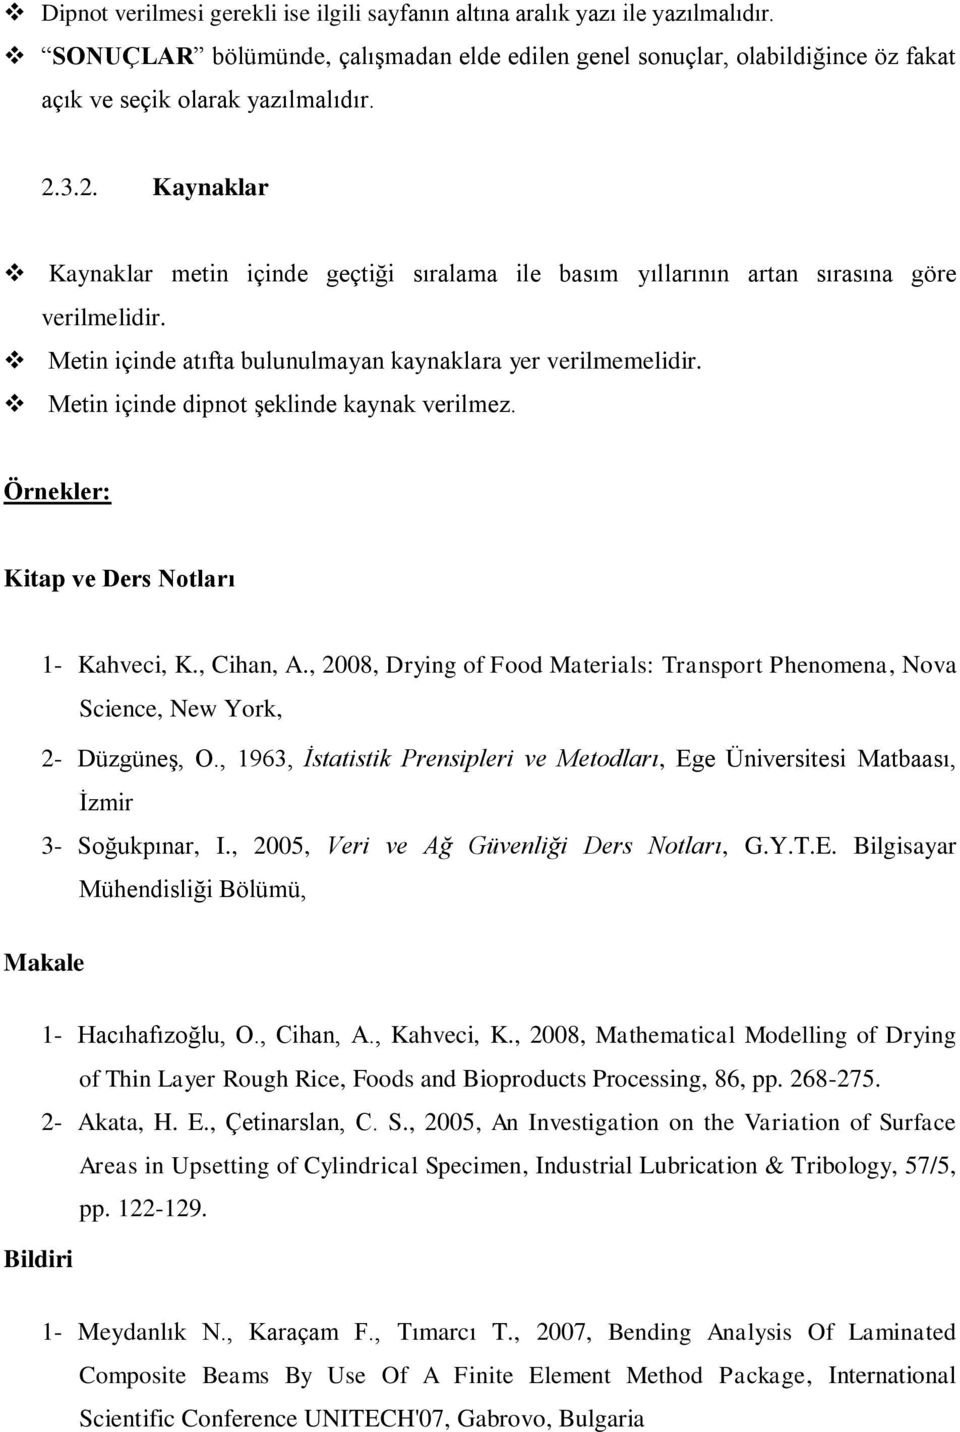 Metin içinde dipnot şeklinde kaynak verilmez. Örnekler: Kitap ve Ders Notları 1- Kahveci, K., Cihan, A., 2008, Drying of Food Materials: Transport Phenomena, Nova Science, New York, 2- Düzgüneş, O.